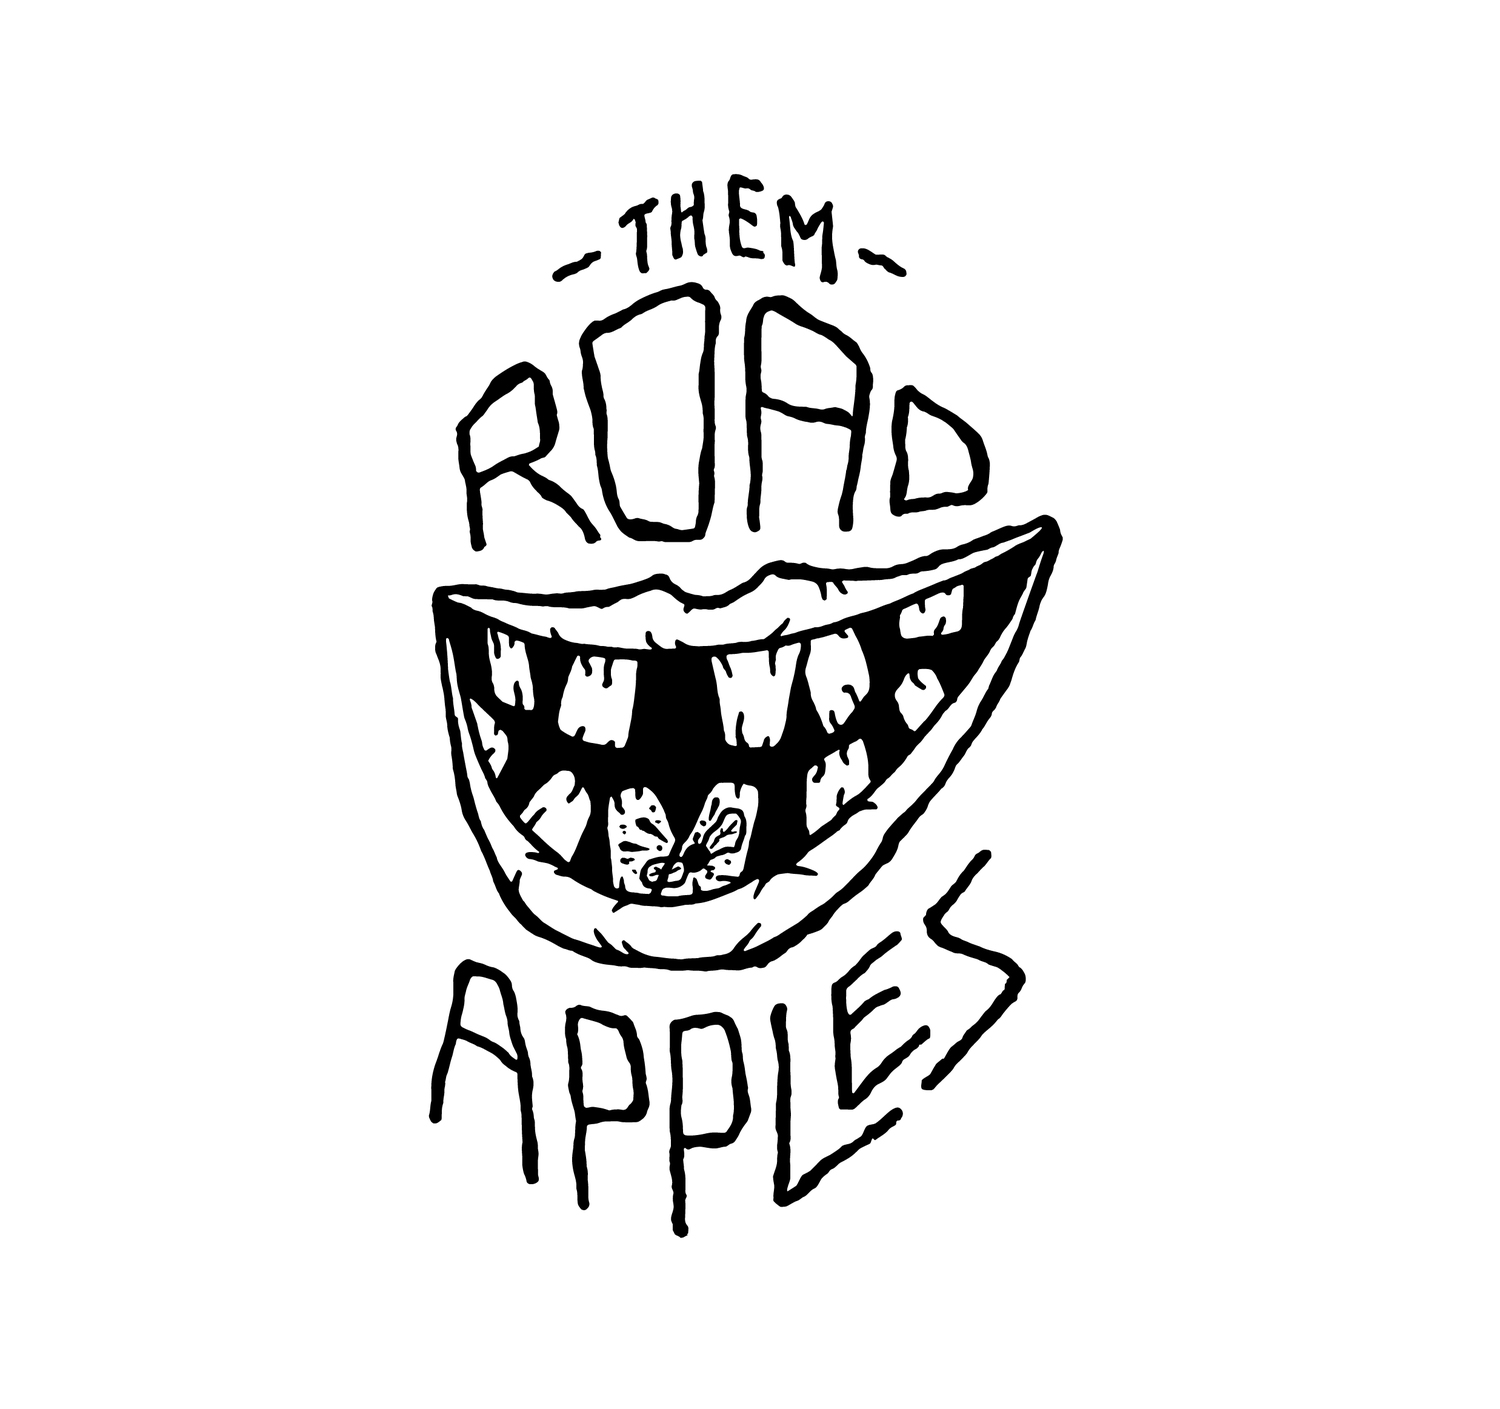 ROAD APPLES